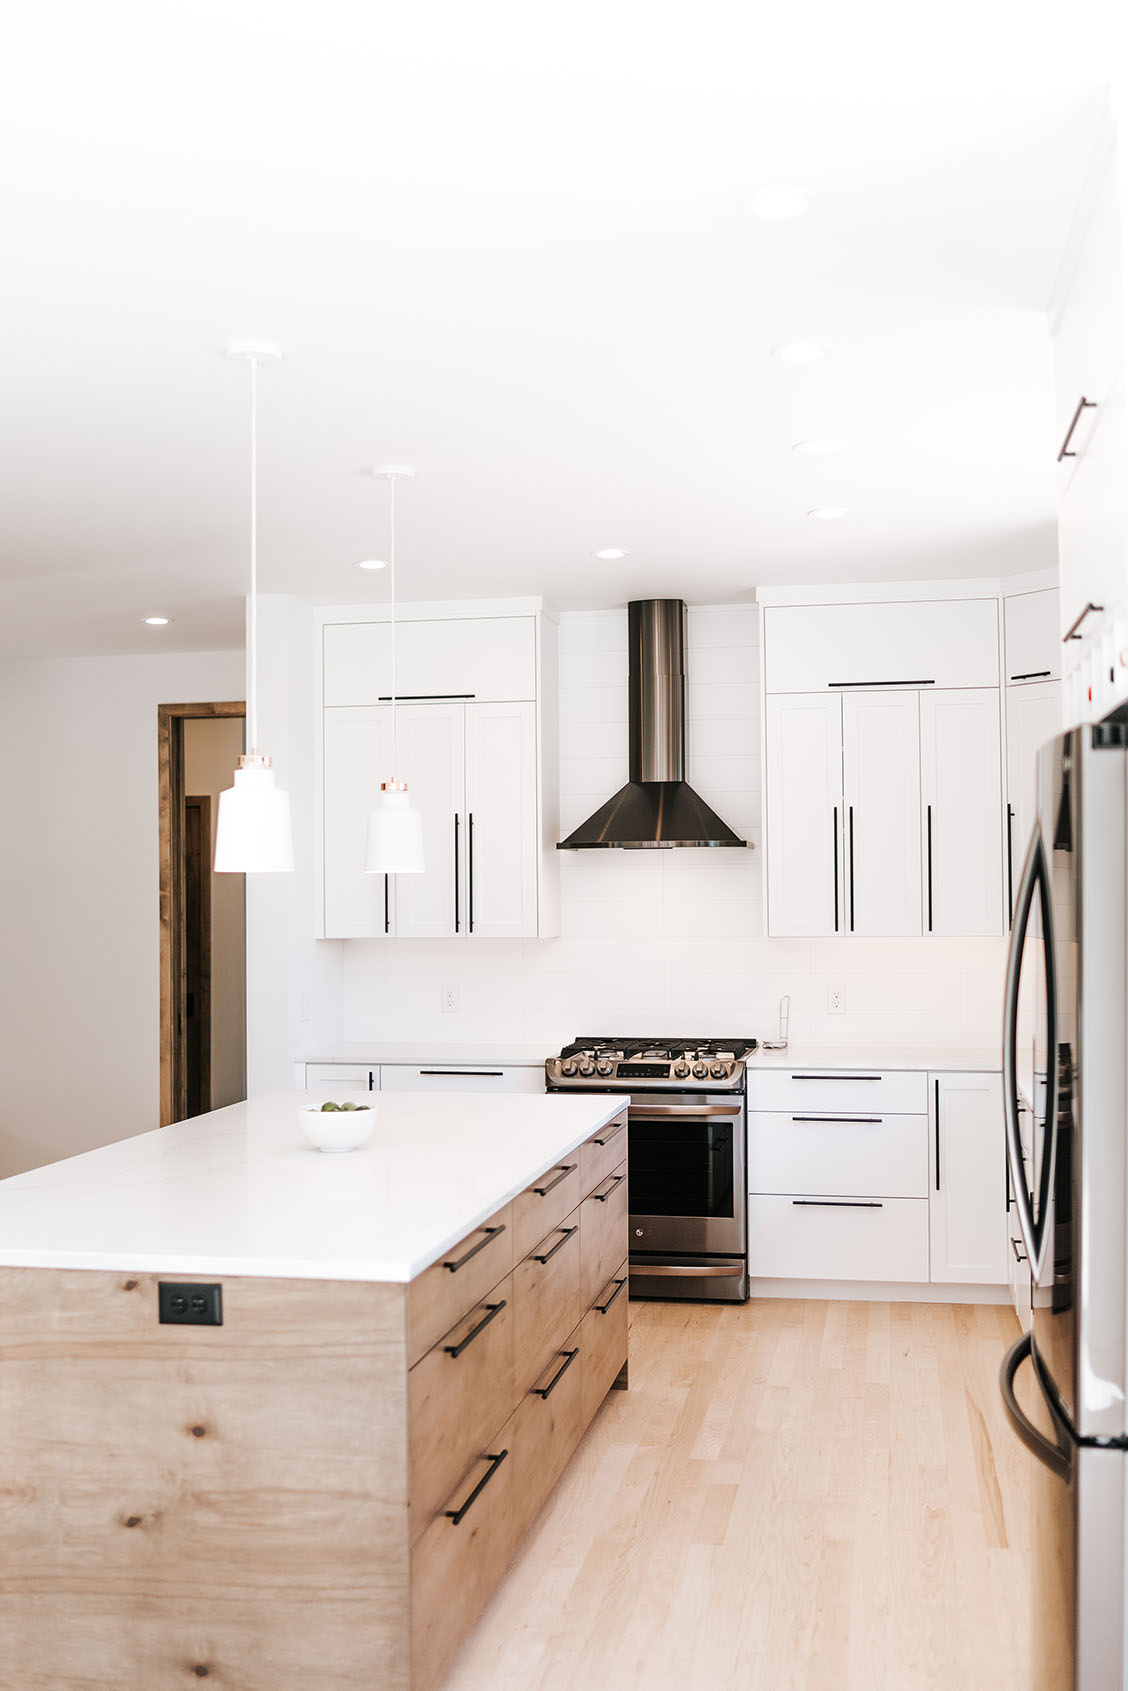 Two Tone Modern Kitchen Cabinets Two toned modern Kitchen   Alpine Cabinetry : Alpine Cabinetry